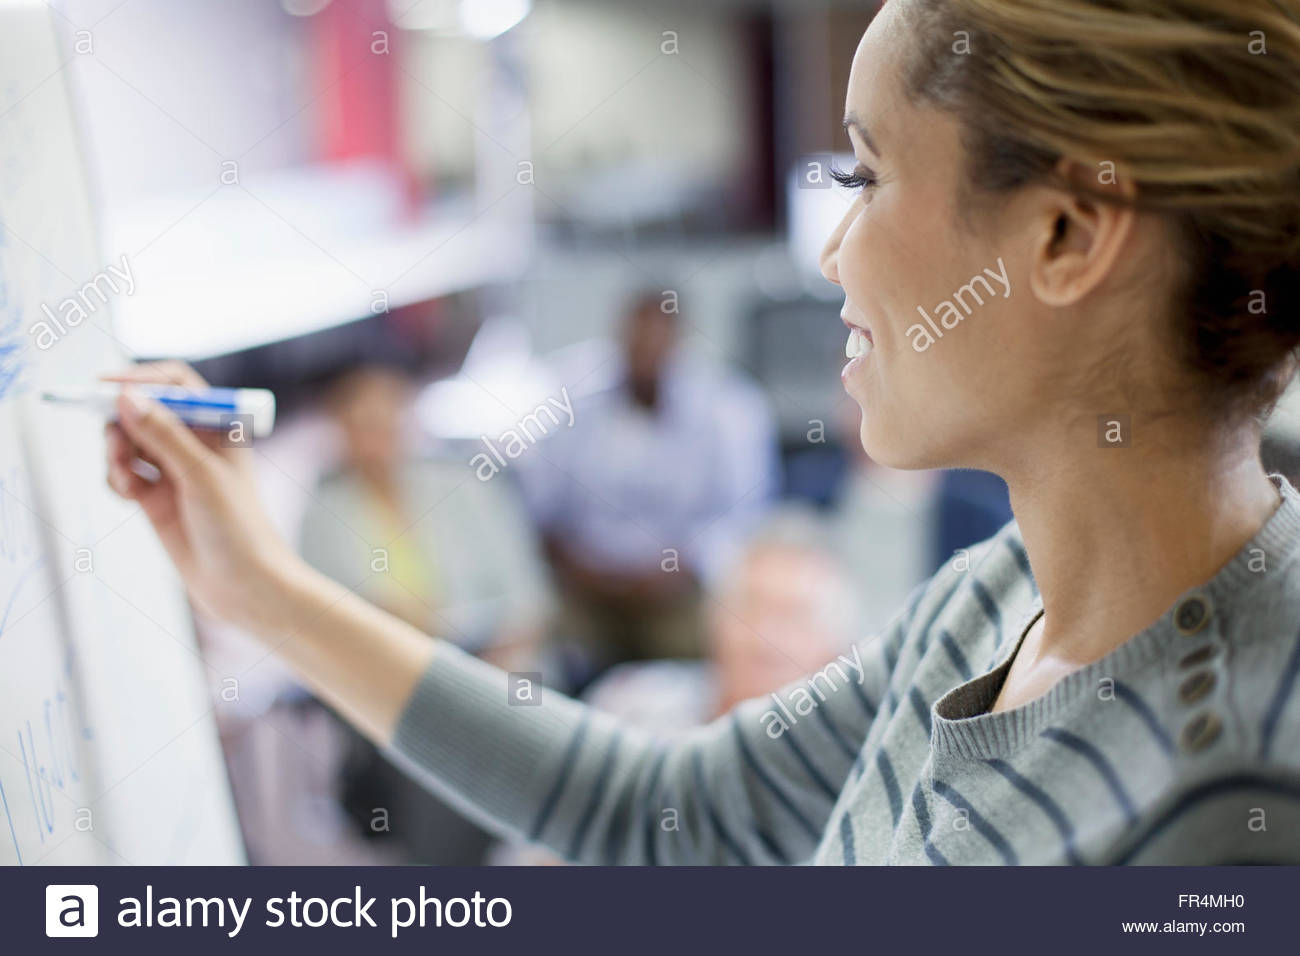 closeup of mid-adult woman writing on whiteboard - Stock Image